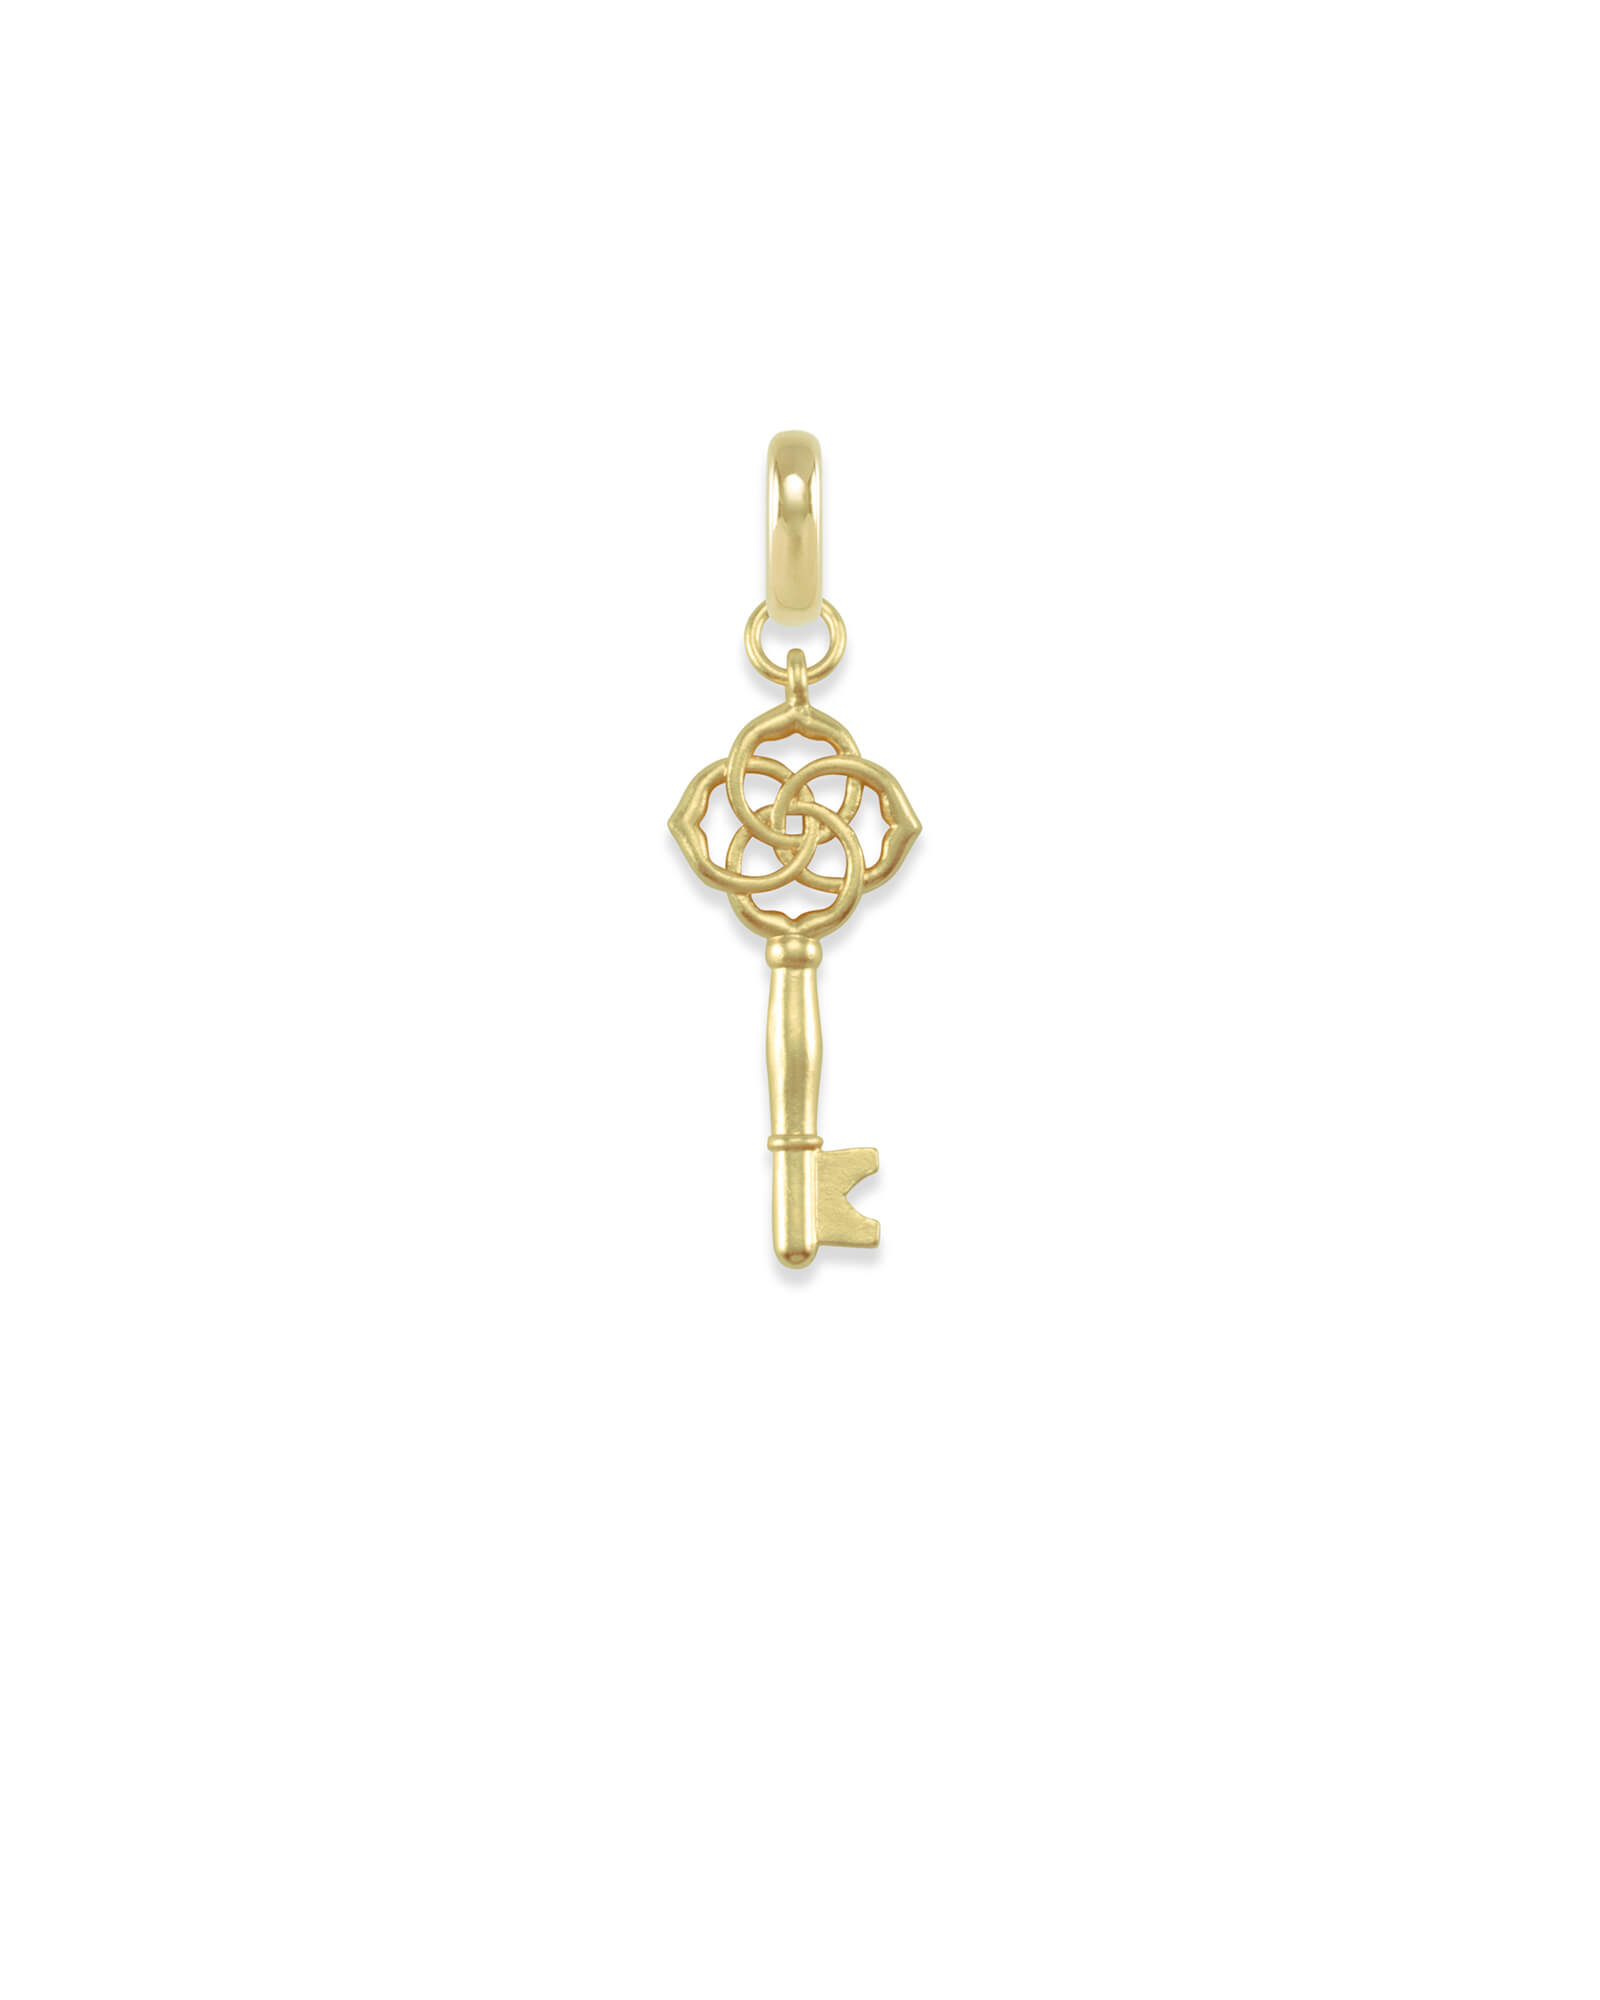 Home & Shelter Charm in Gold